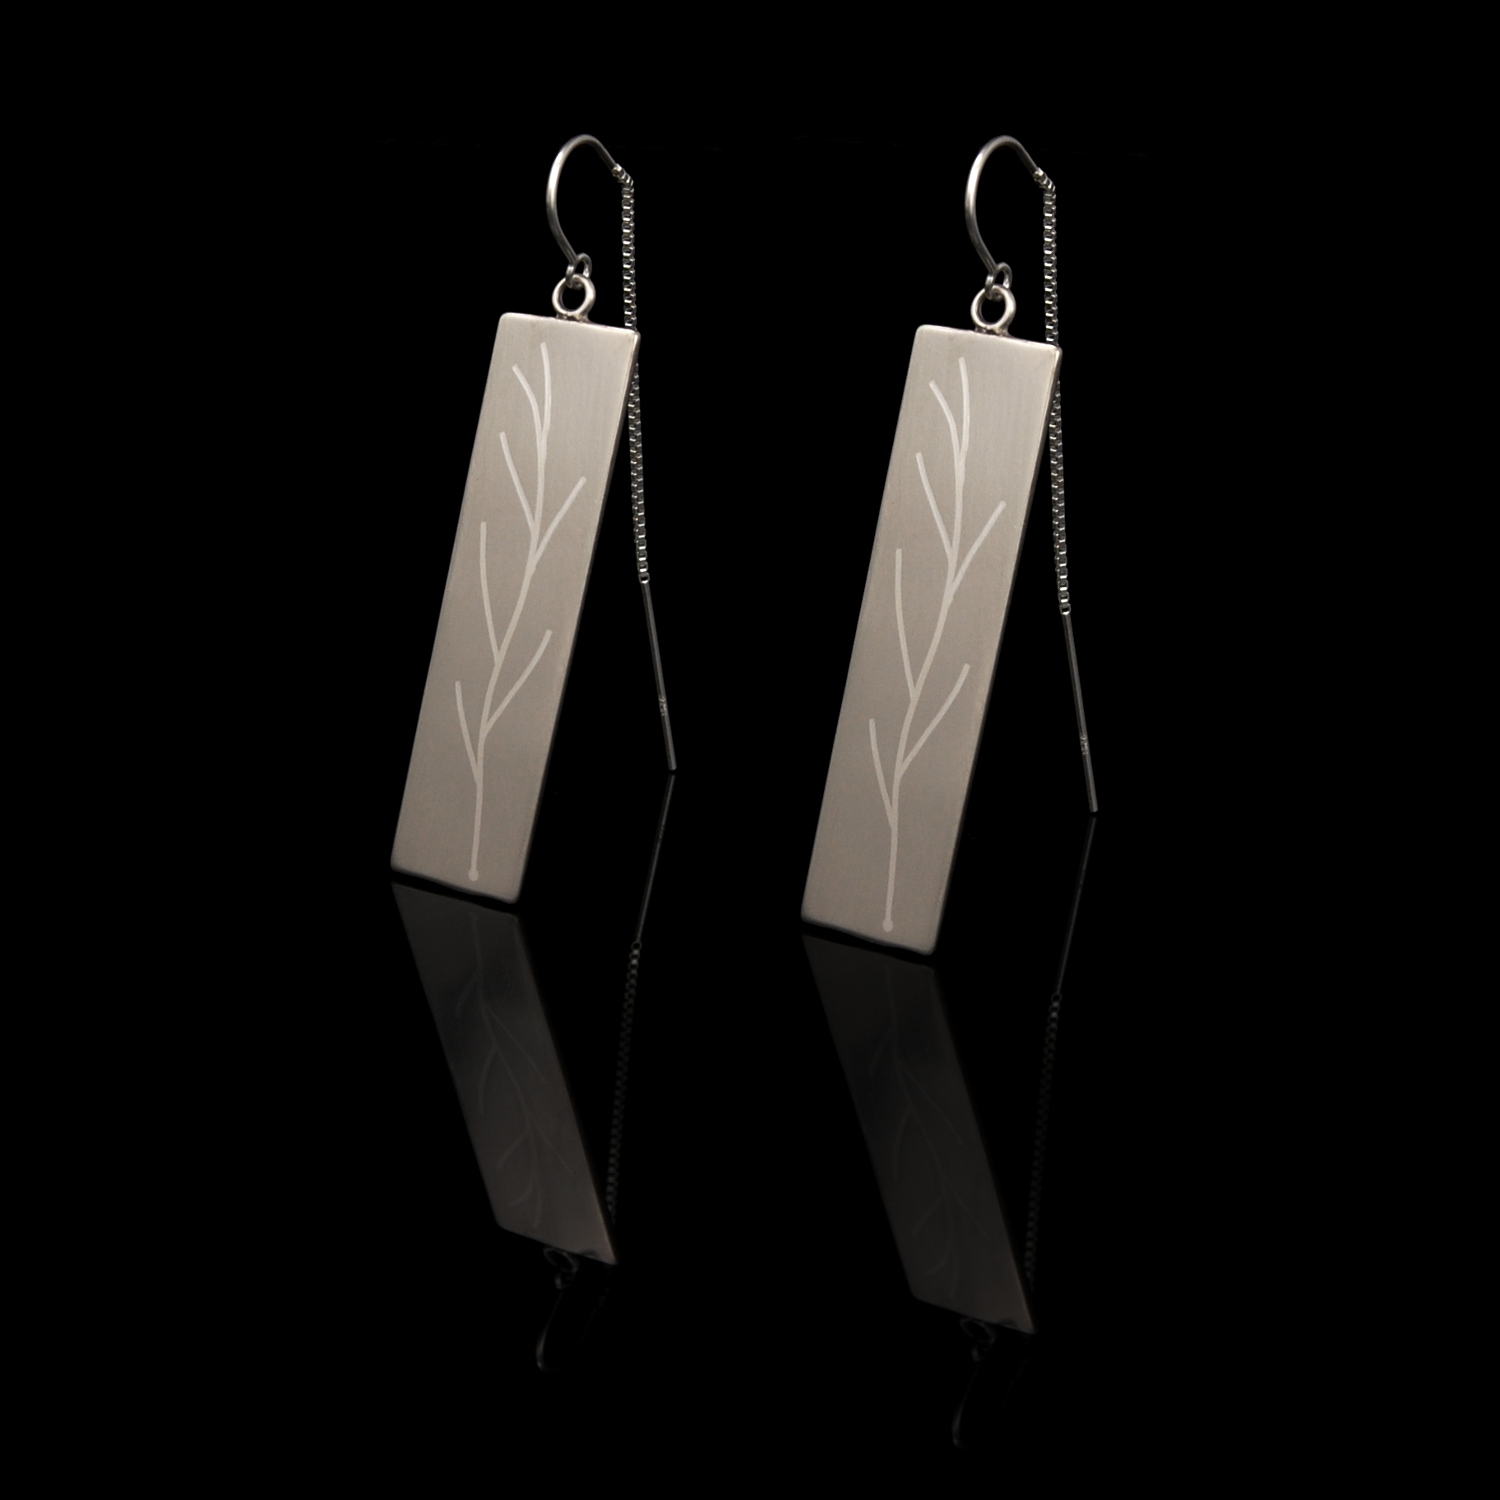 A set of nickel and silver earrings from the Twigs Collection